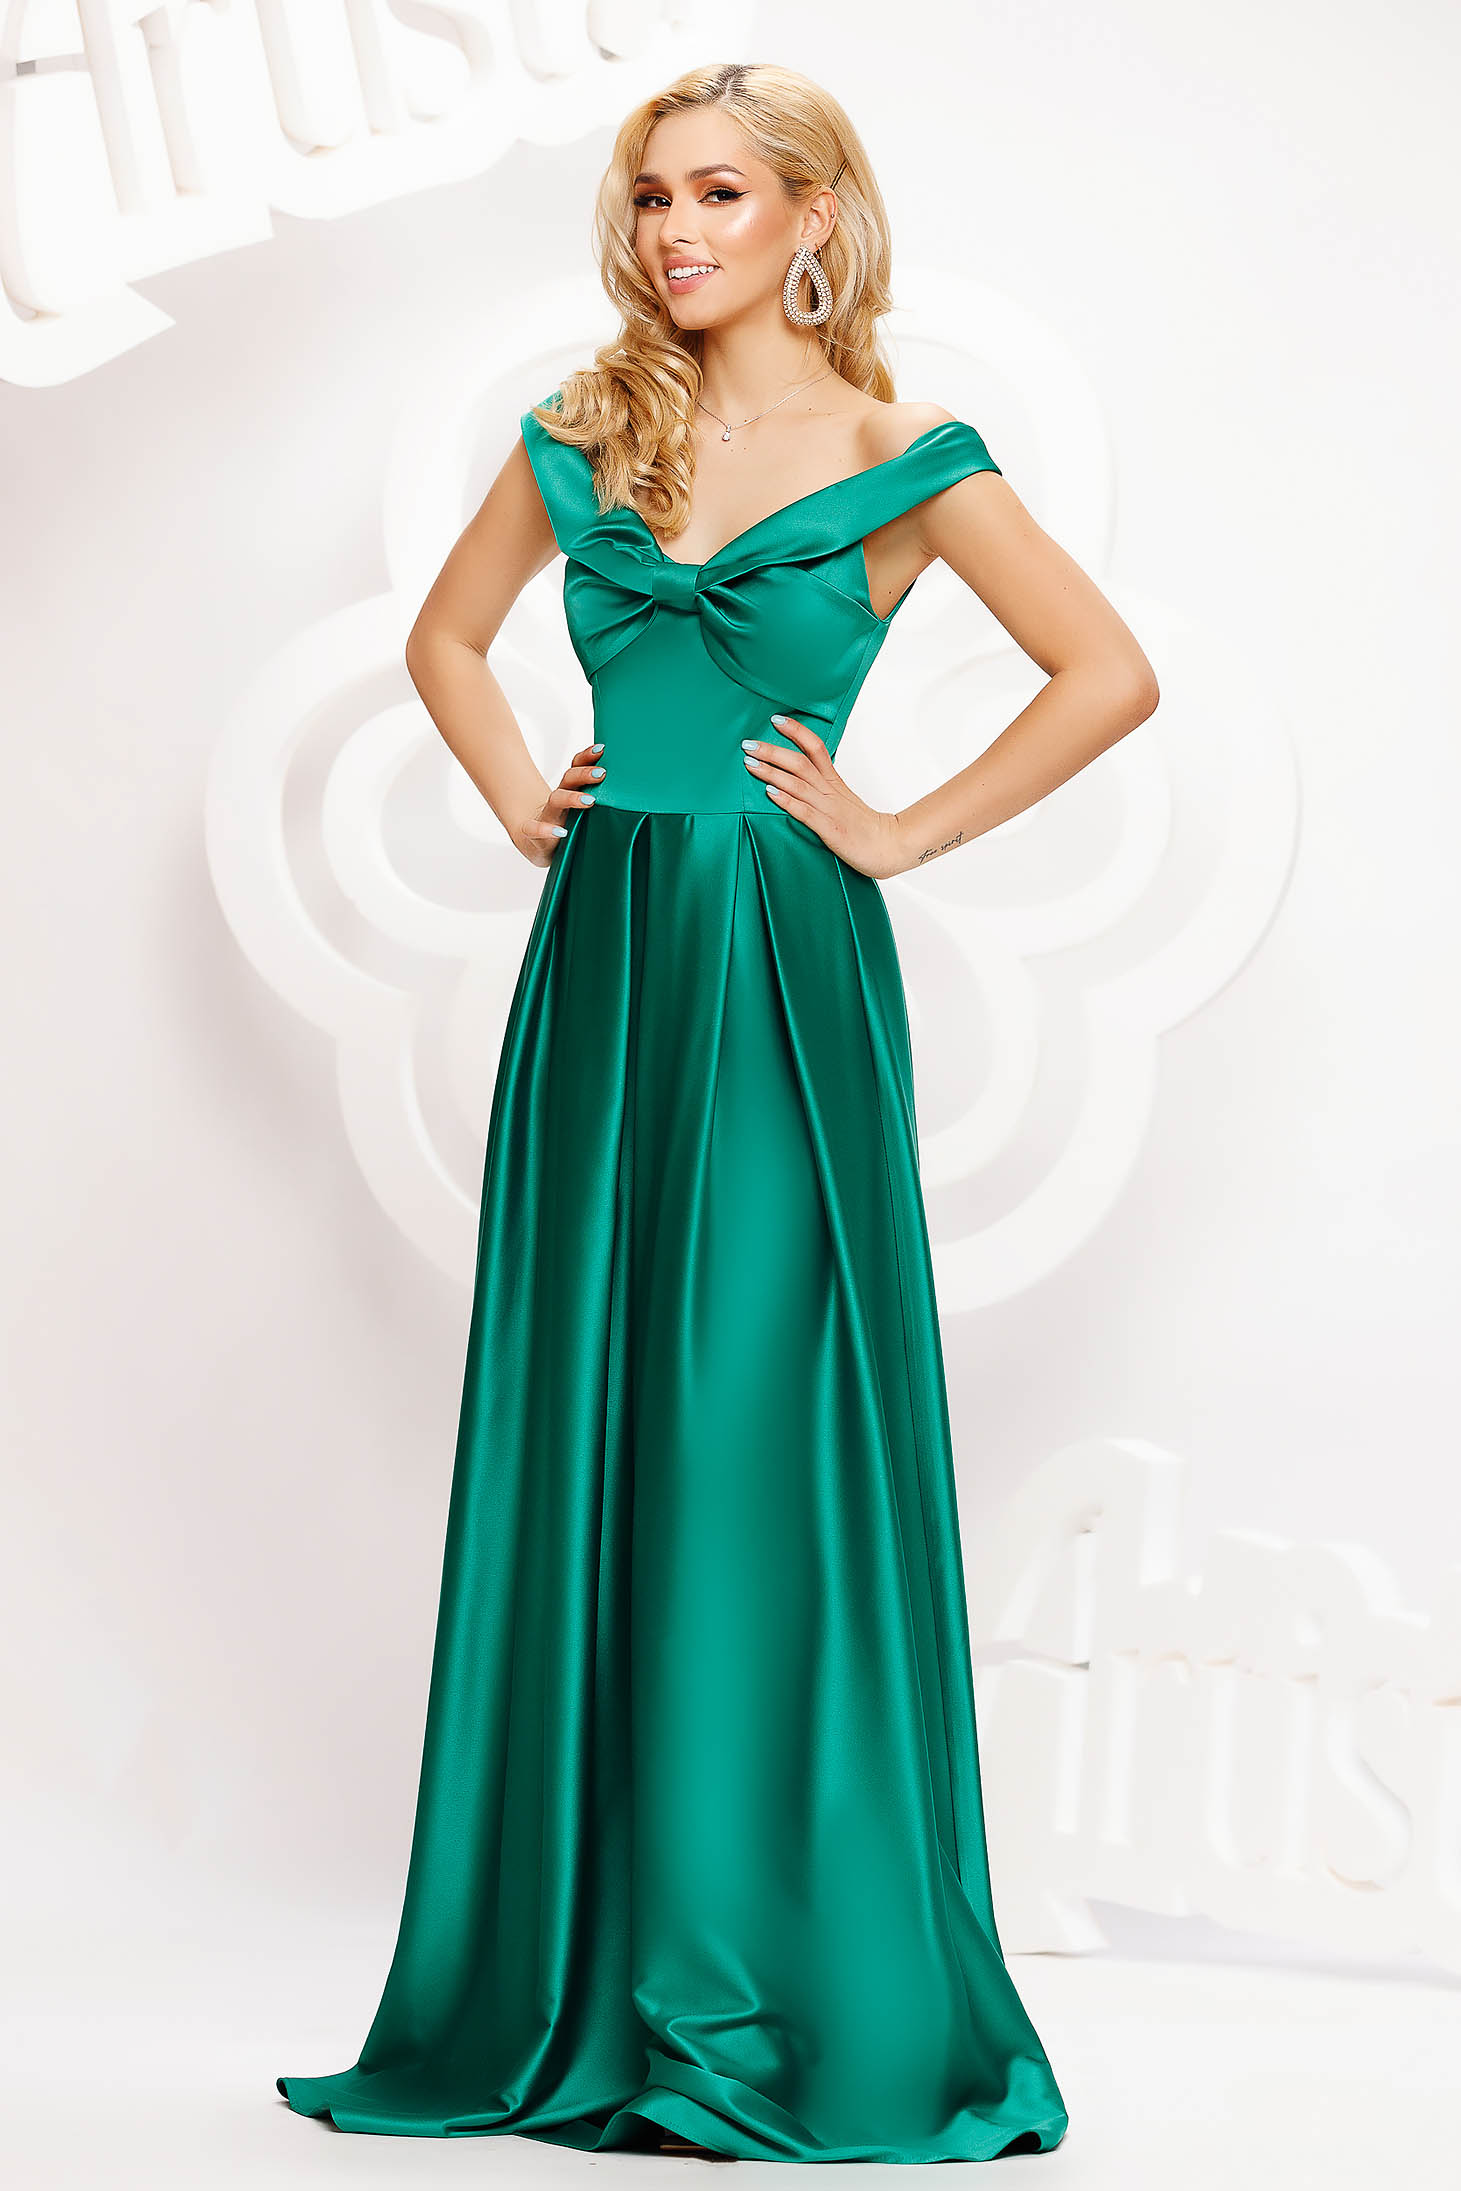 Green dress long cloche from satin naked shoulders with bow